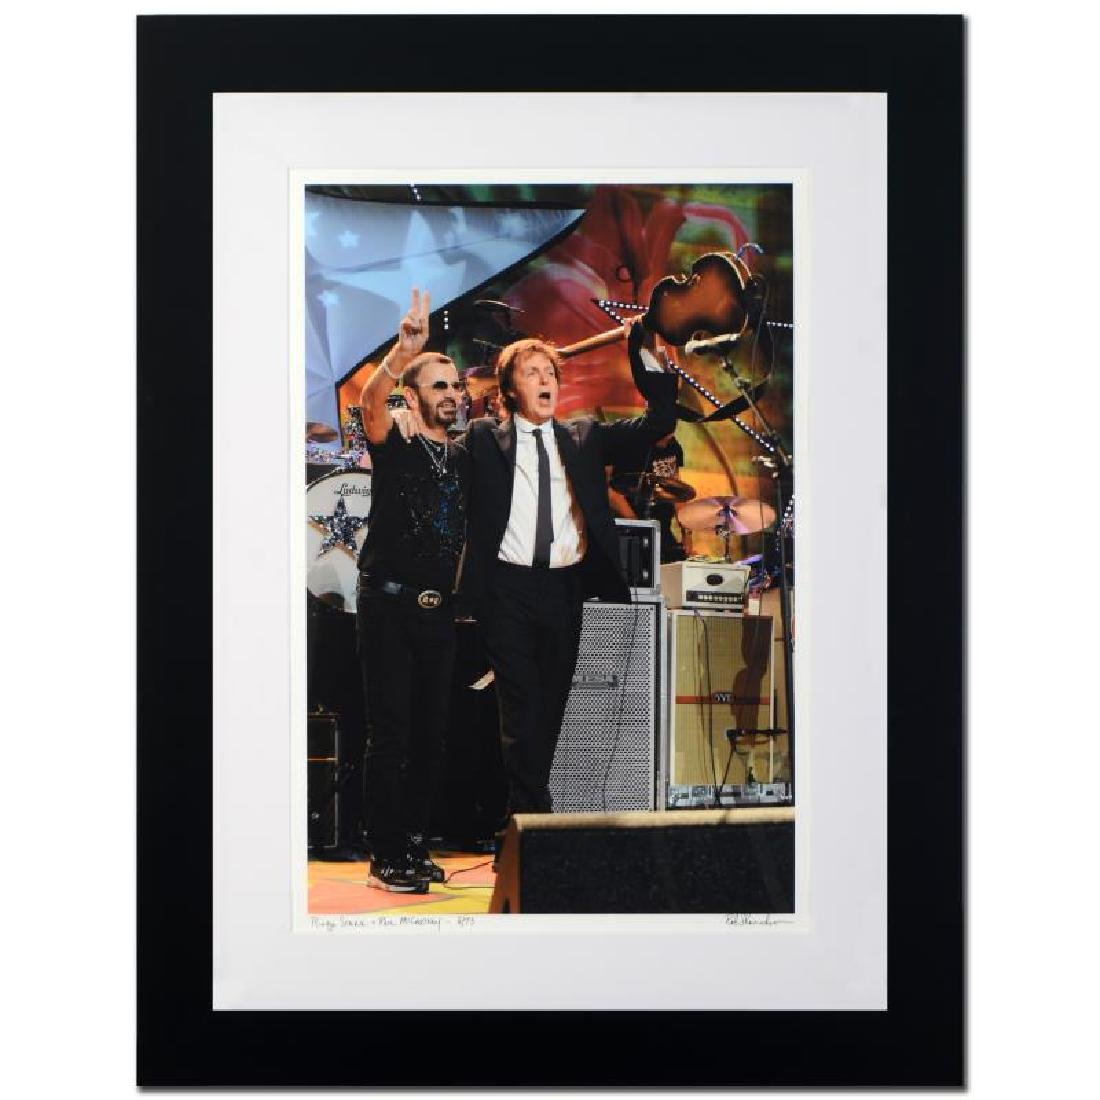 """Ringo Starr & Paul McCartney"" Limited Edition Giclee"